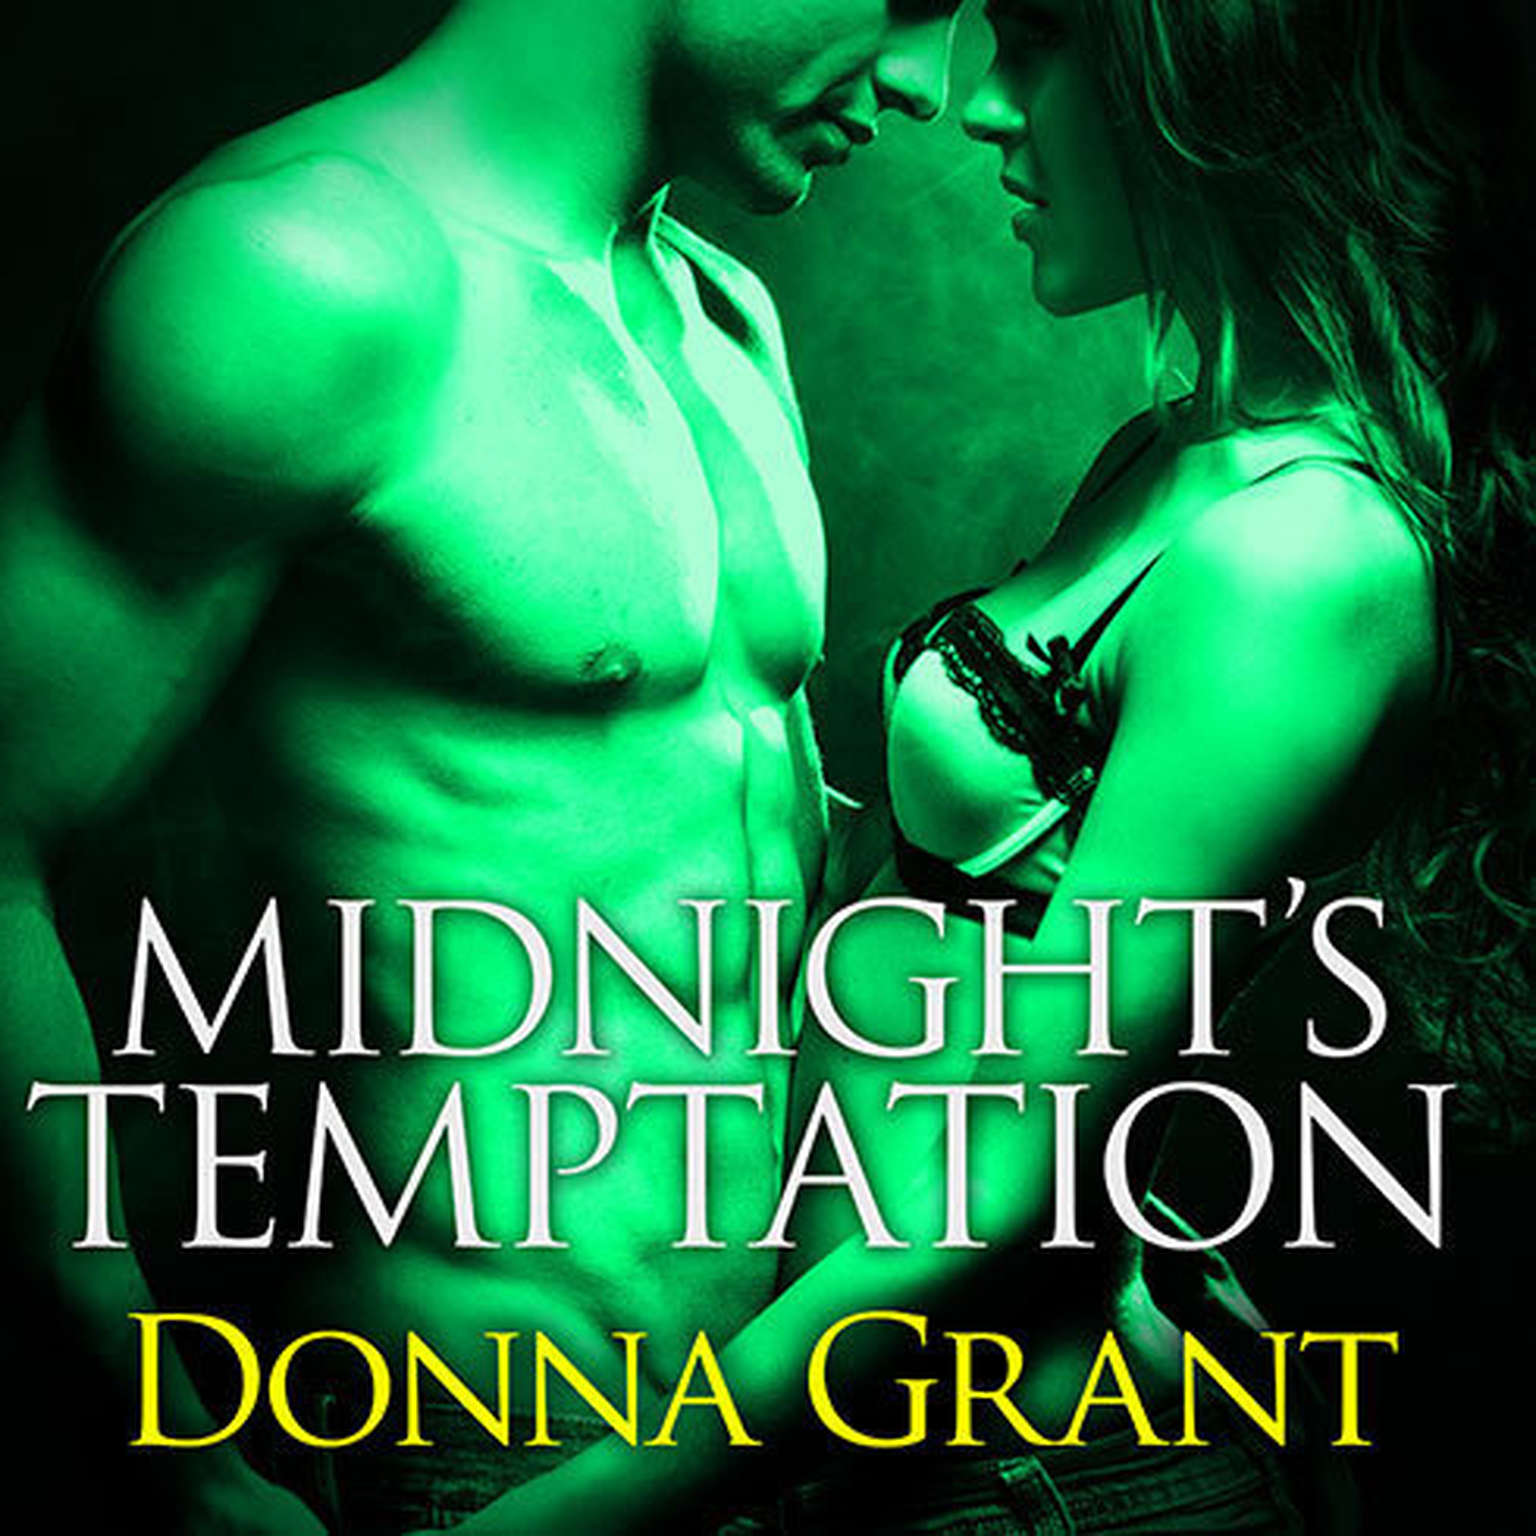 Printable Midnight's Temptation Audiobook Cover Art